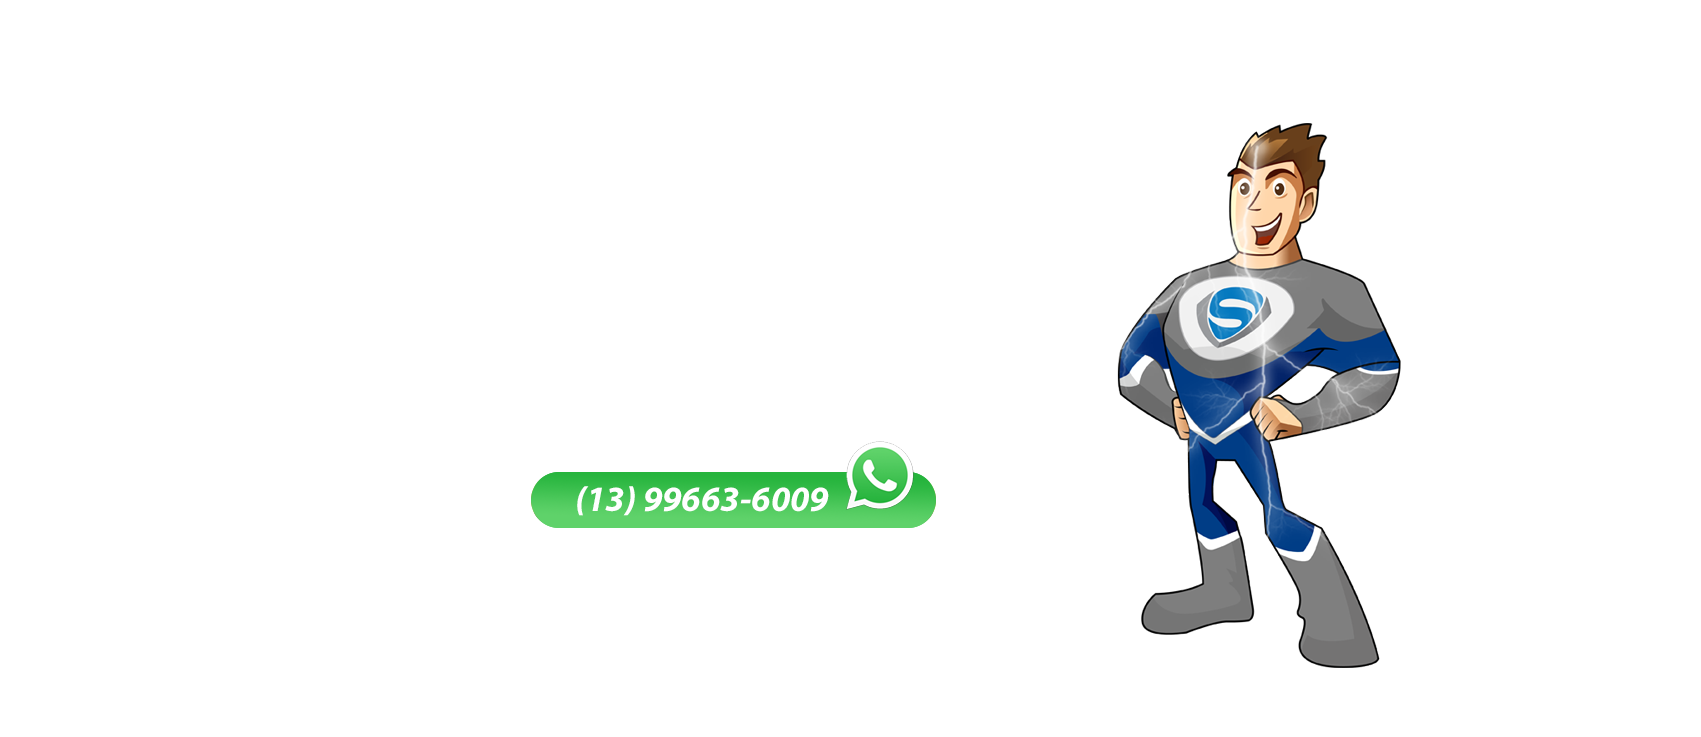 banner-principal-do-site-heroi-whatsapp-2019-2